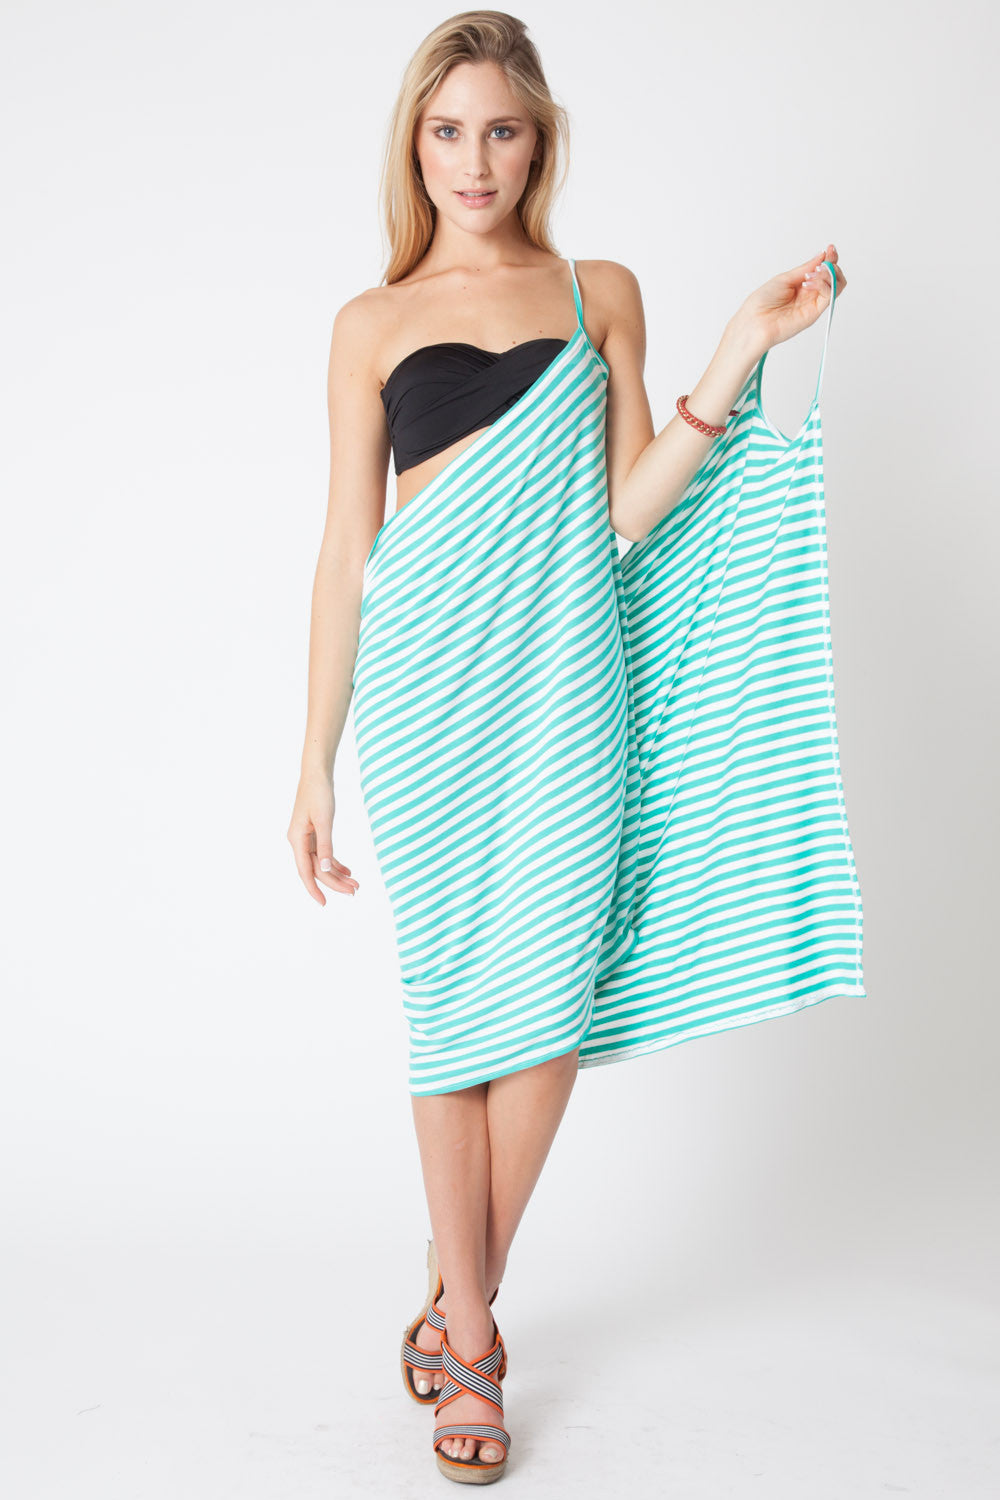 Convertible Beach Wrap Dress in Aqua Stripe